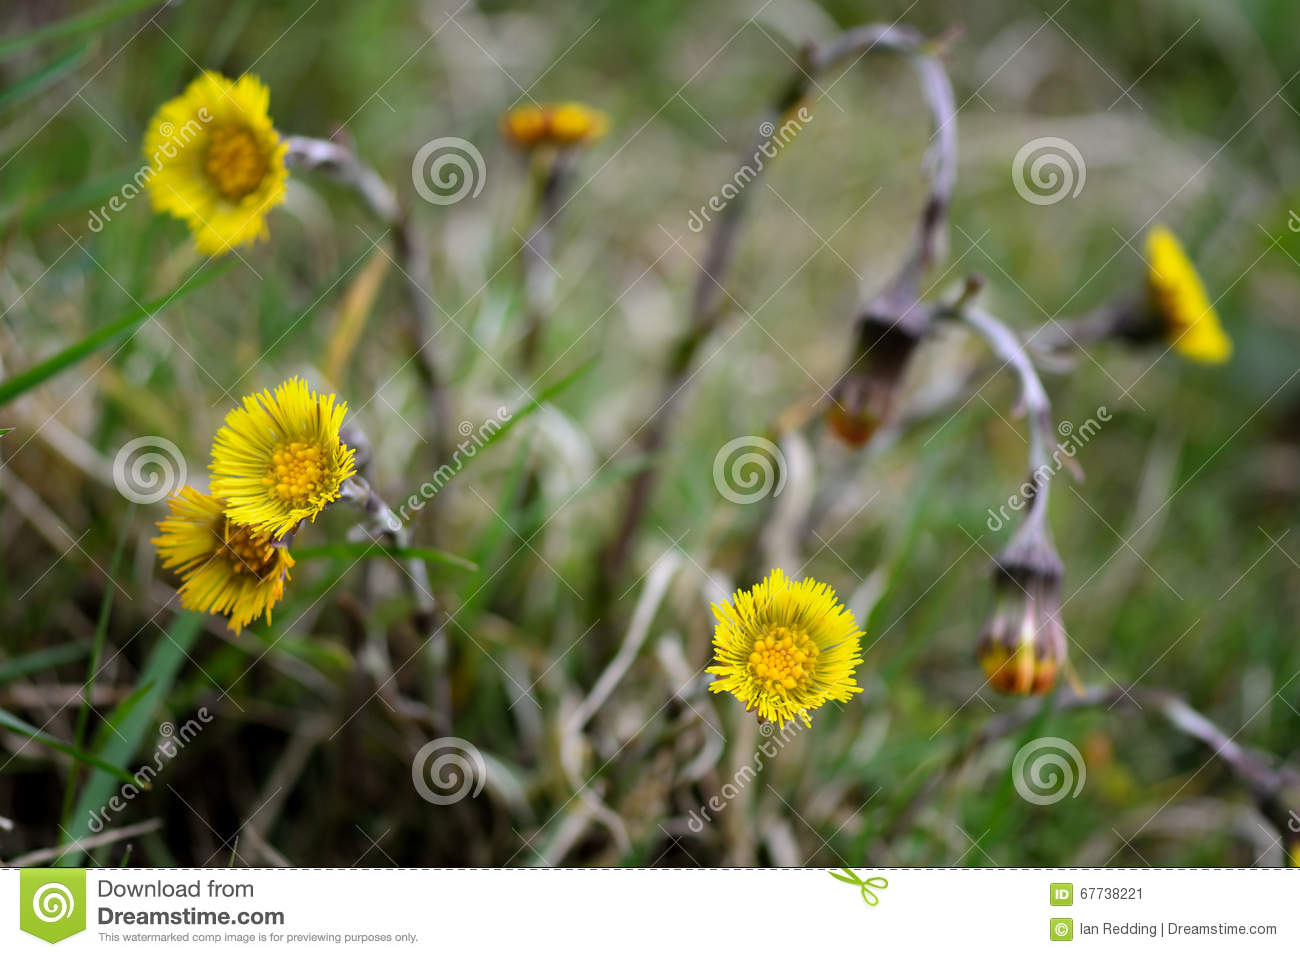 Coltsfoot tussilago farfara stock image image of tragopogon a yellow early spring flower in the daisy family asteraceae a plant with a long history of use in herbal medicine izmirmasajfo